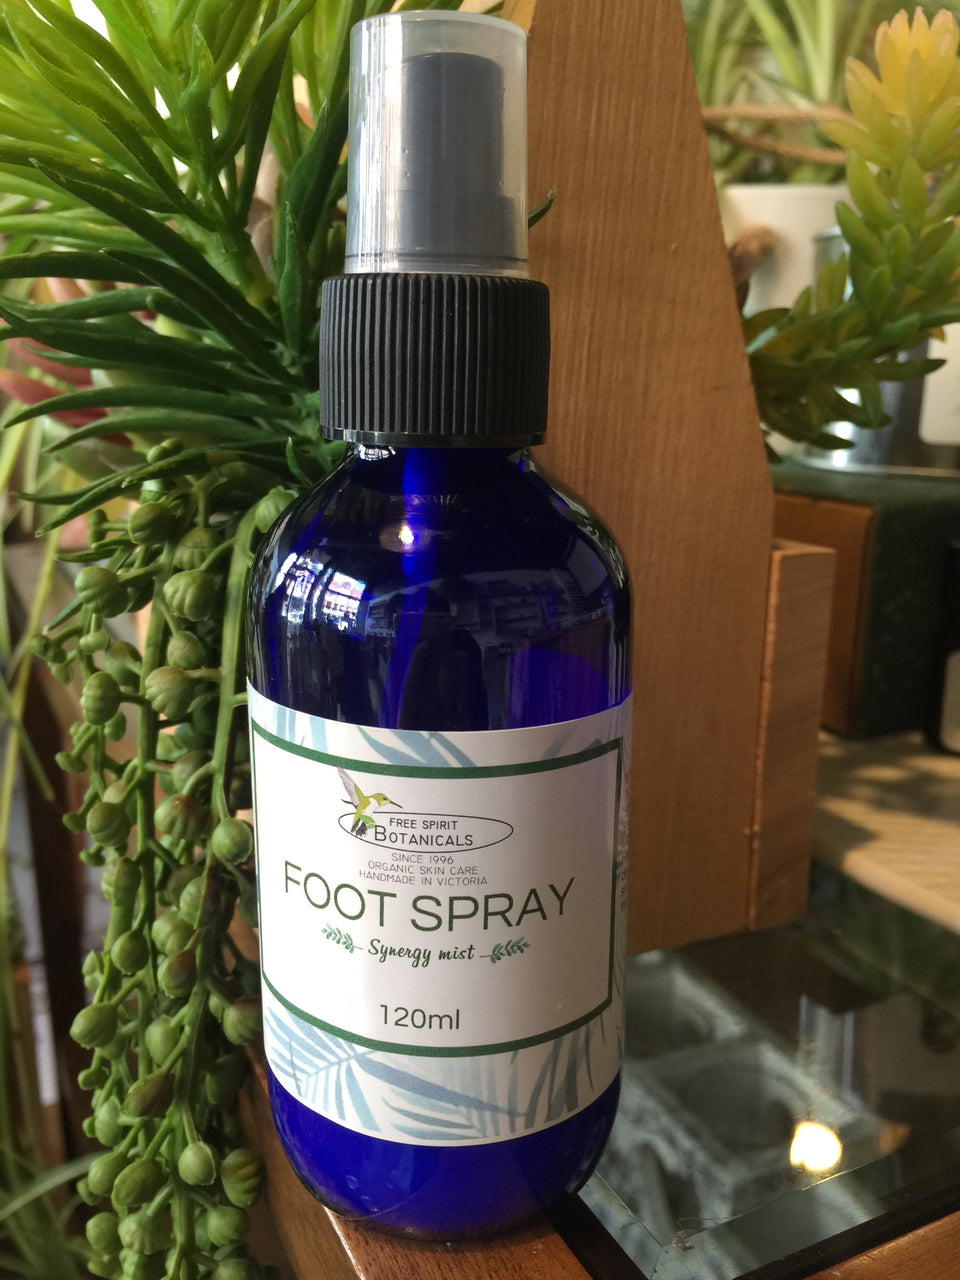 The Ultimate Foot Spray